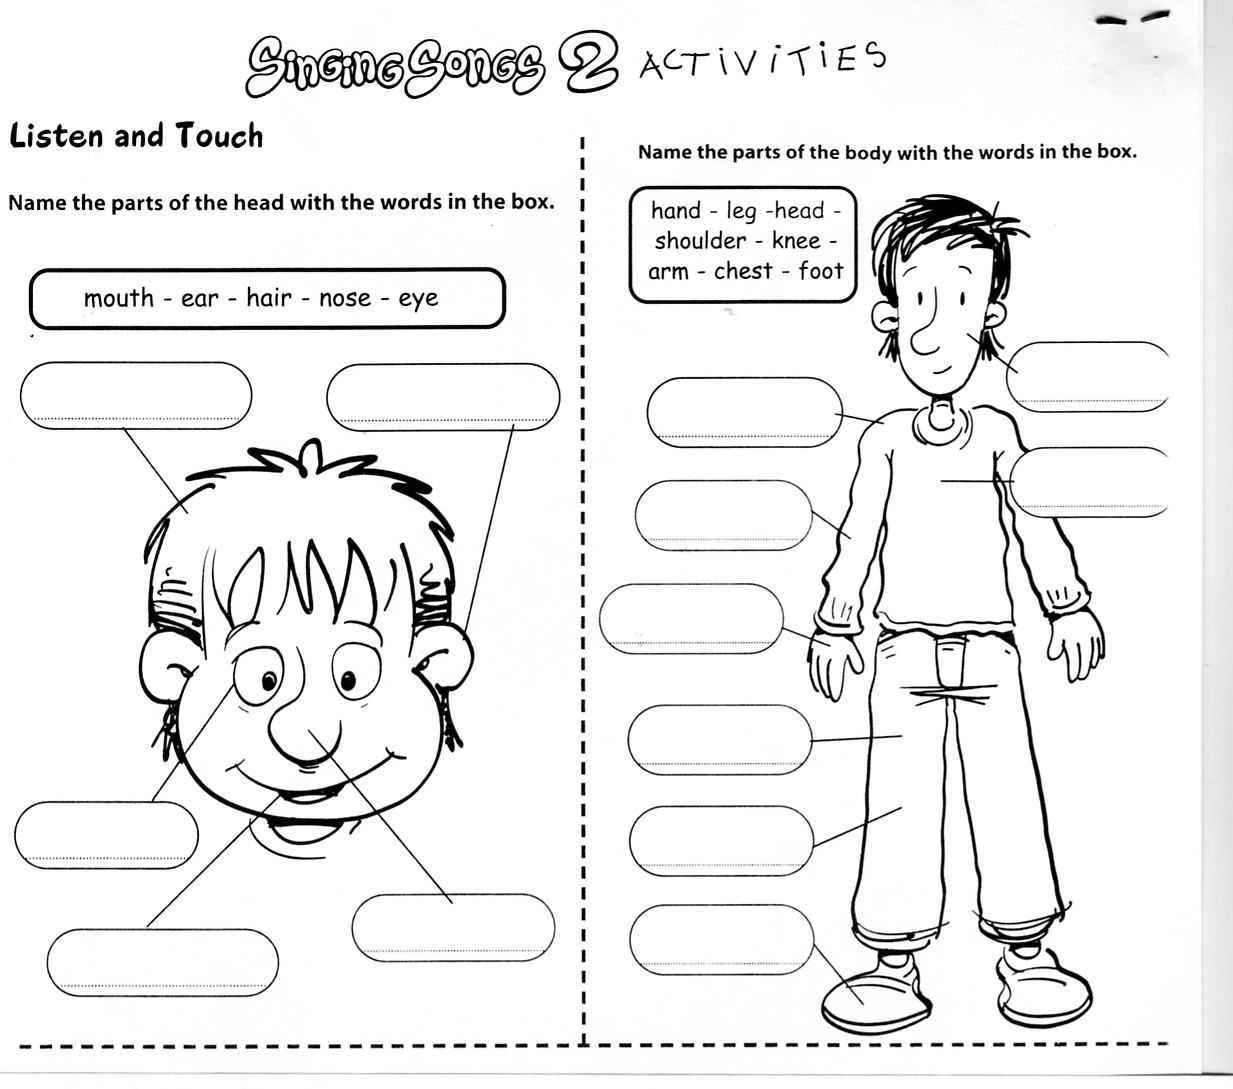 This Esol Worksheet Is Intended To Familiarize The Children With The Parts Of Their Body But